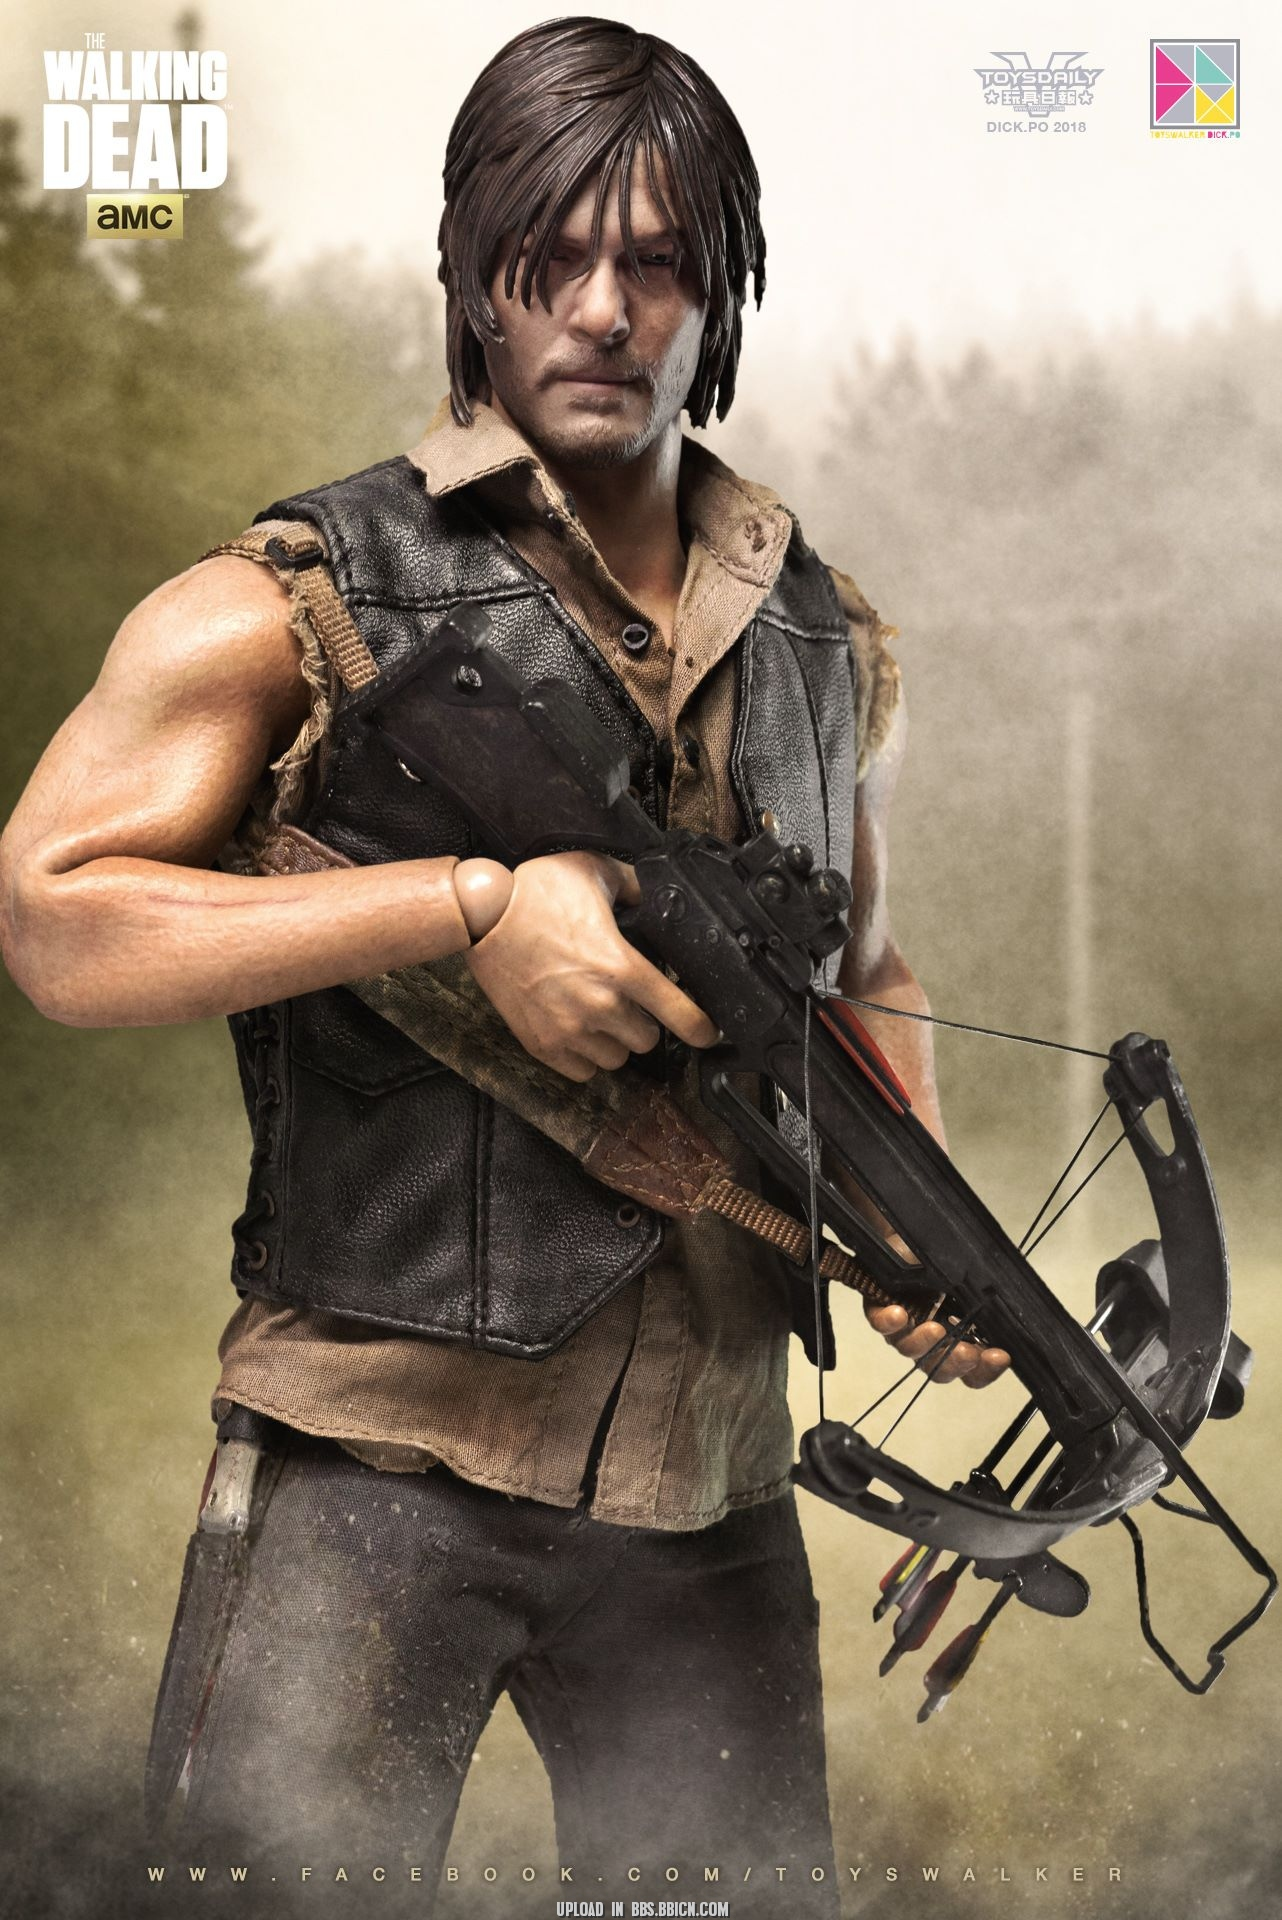 The Walking Dead Daryl Dixon6.jpg